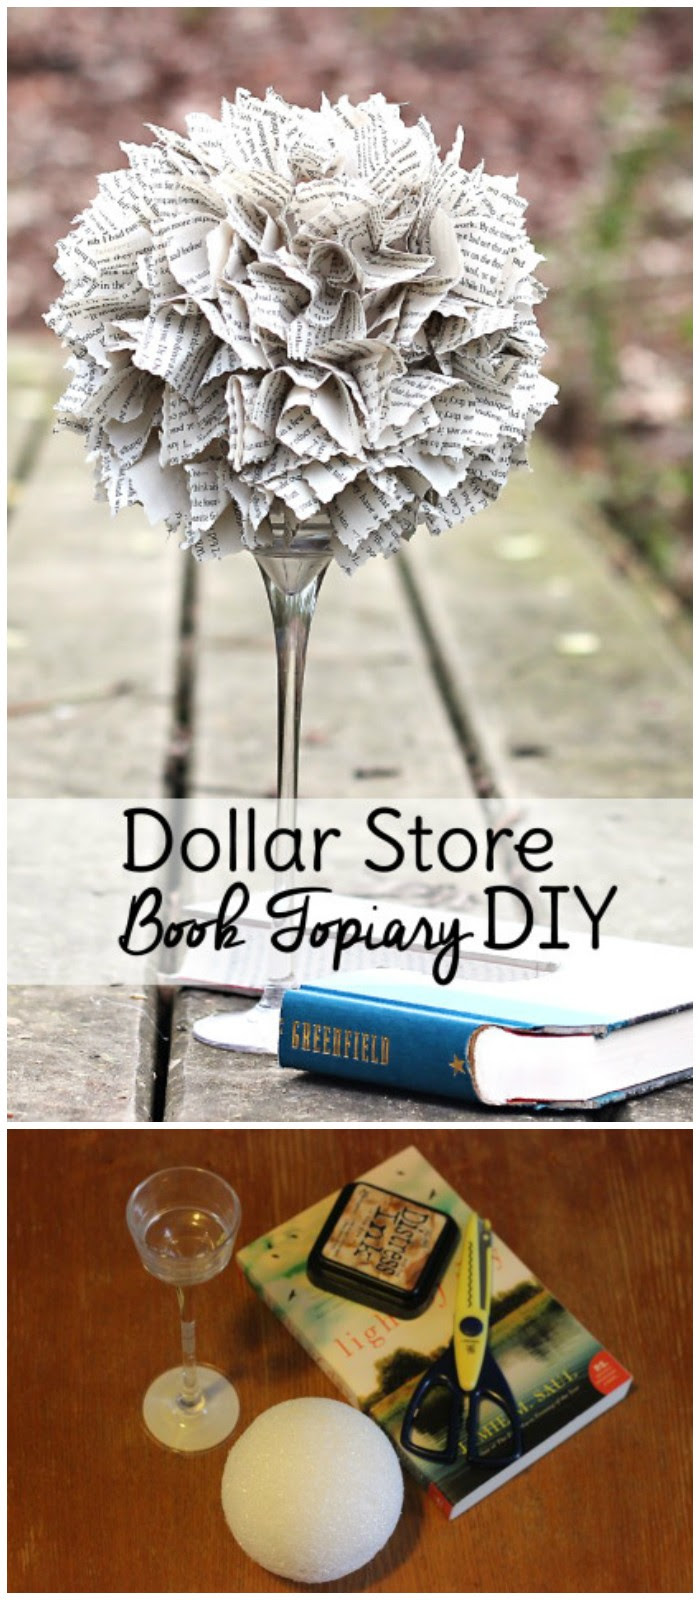 DIY Dollar Store crafts & Decorating ideas • DIY Home Decor